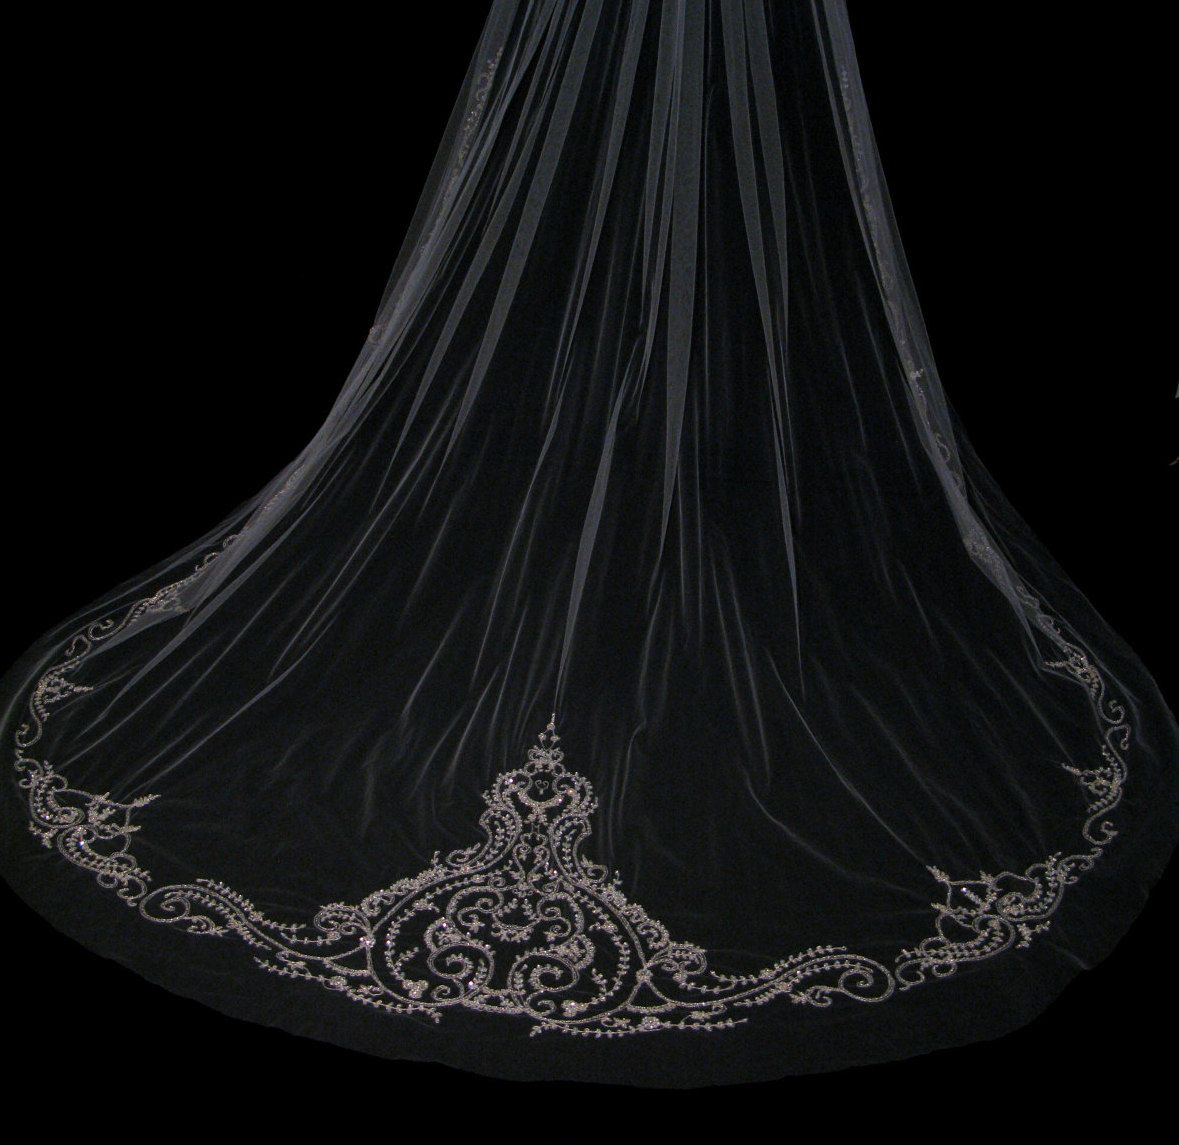 Couture+bridal+or+wedding+veil++Sophia+by